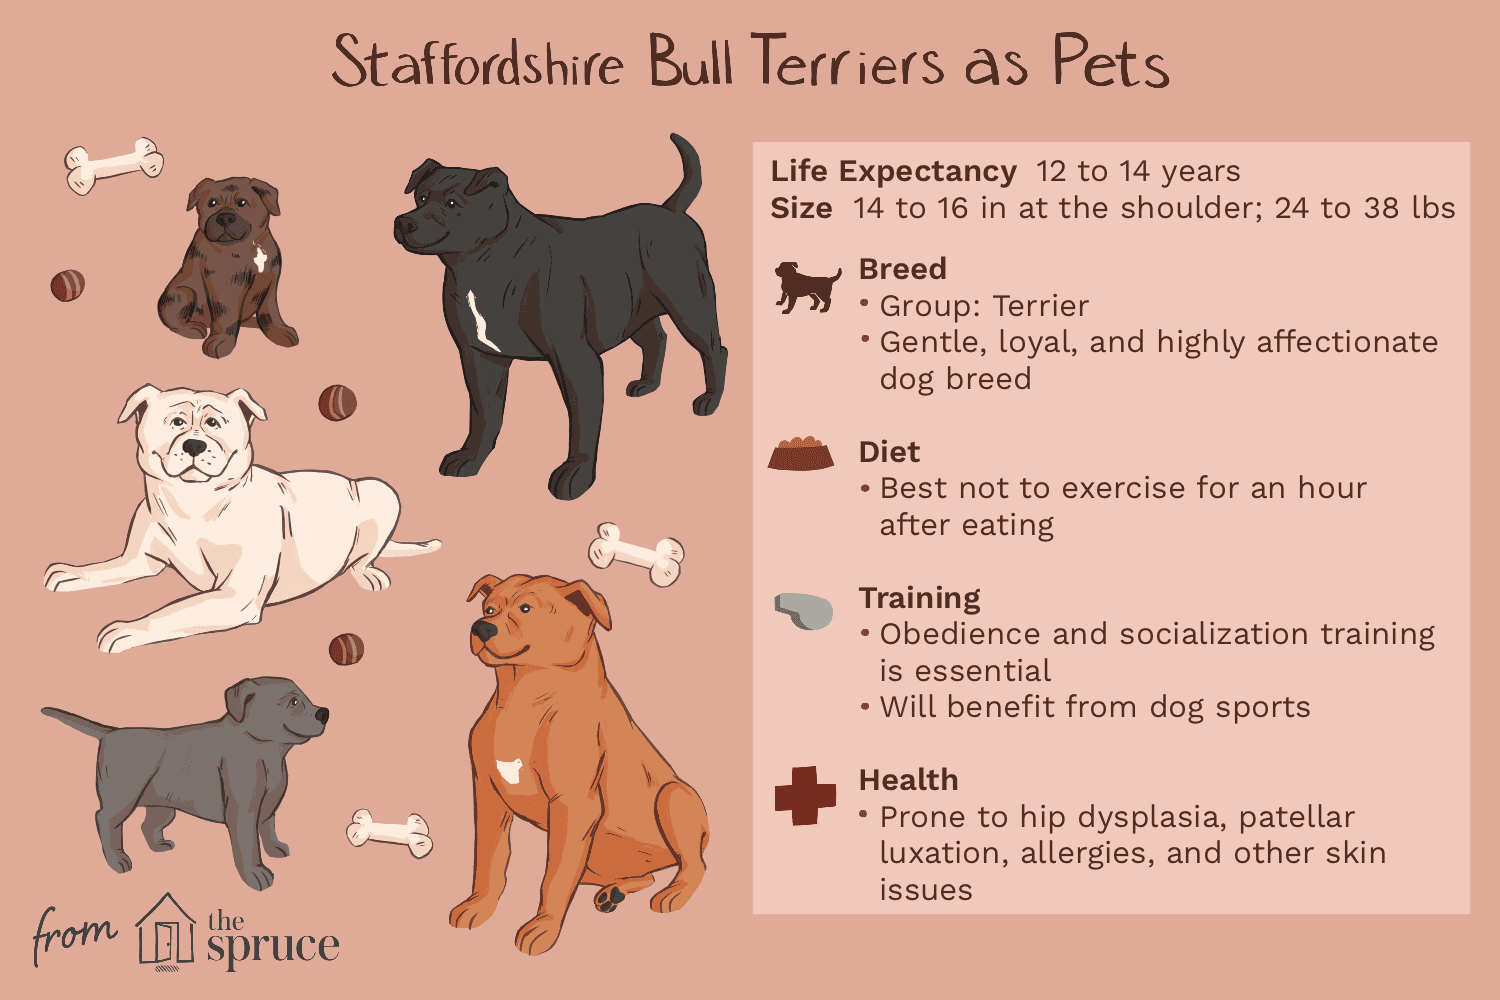 staffordshire bull terriers as pets illustration